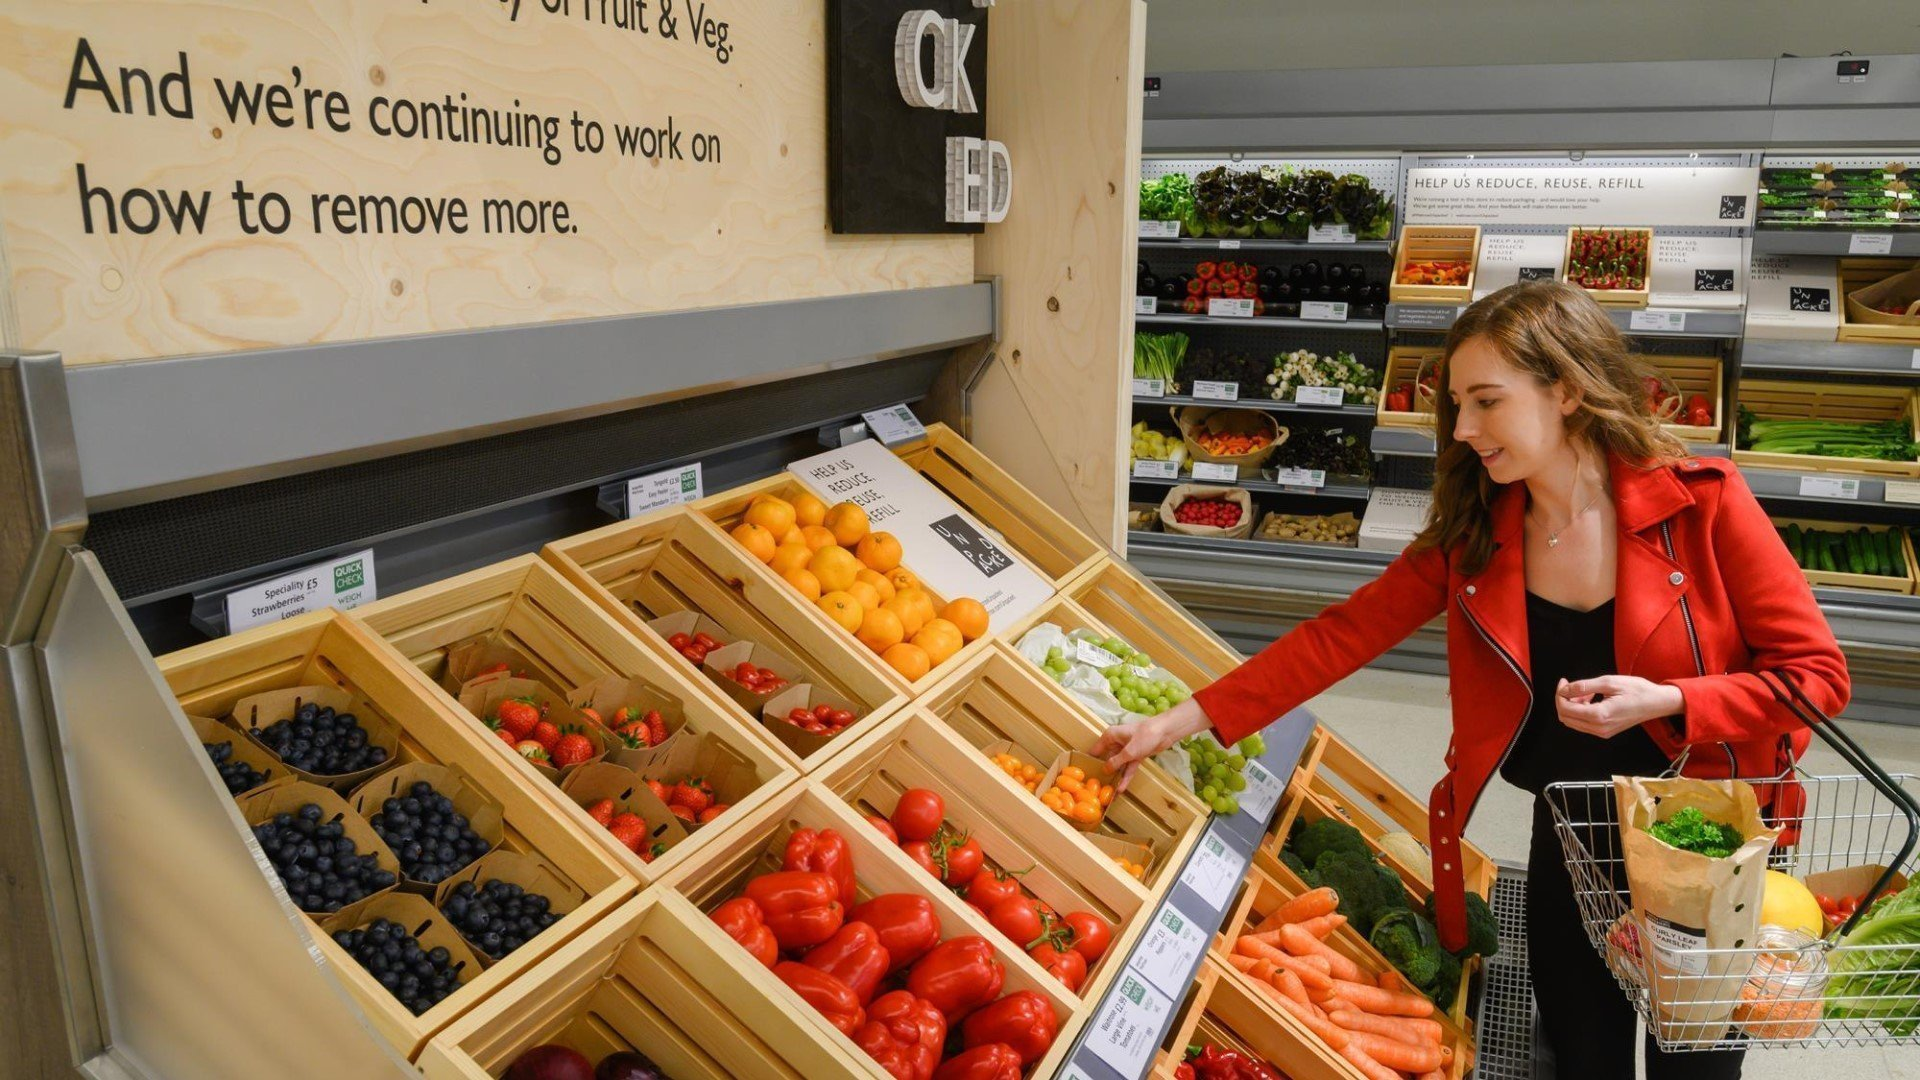 Waitrose Botley Road Oxford trails packaging-free shopping